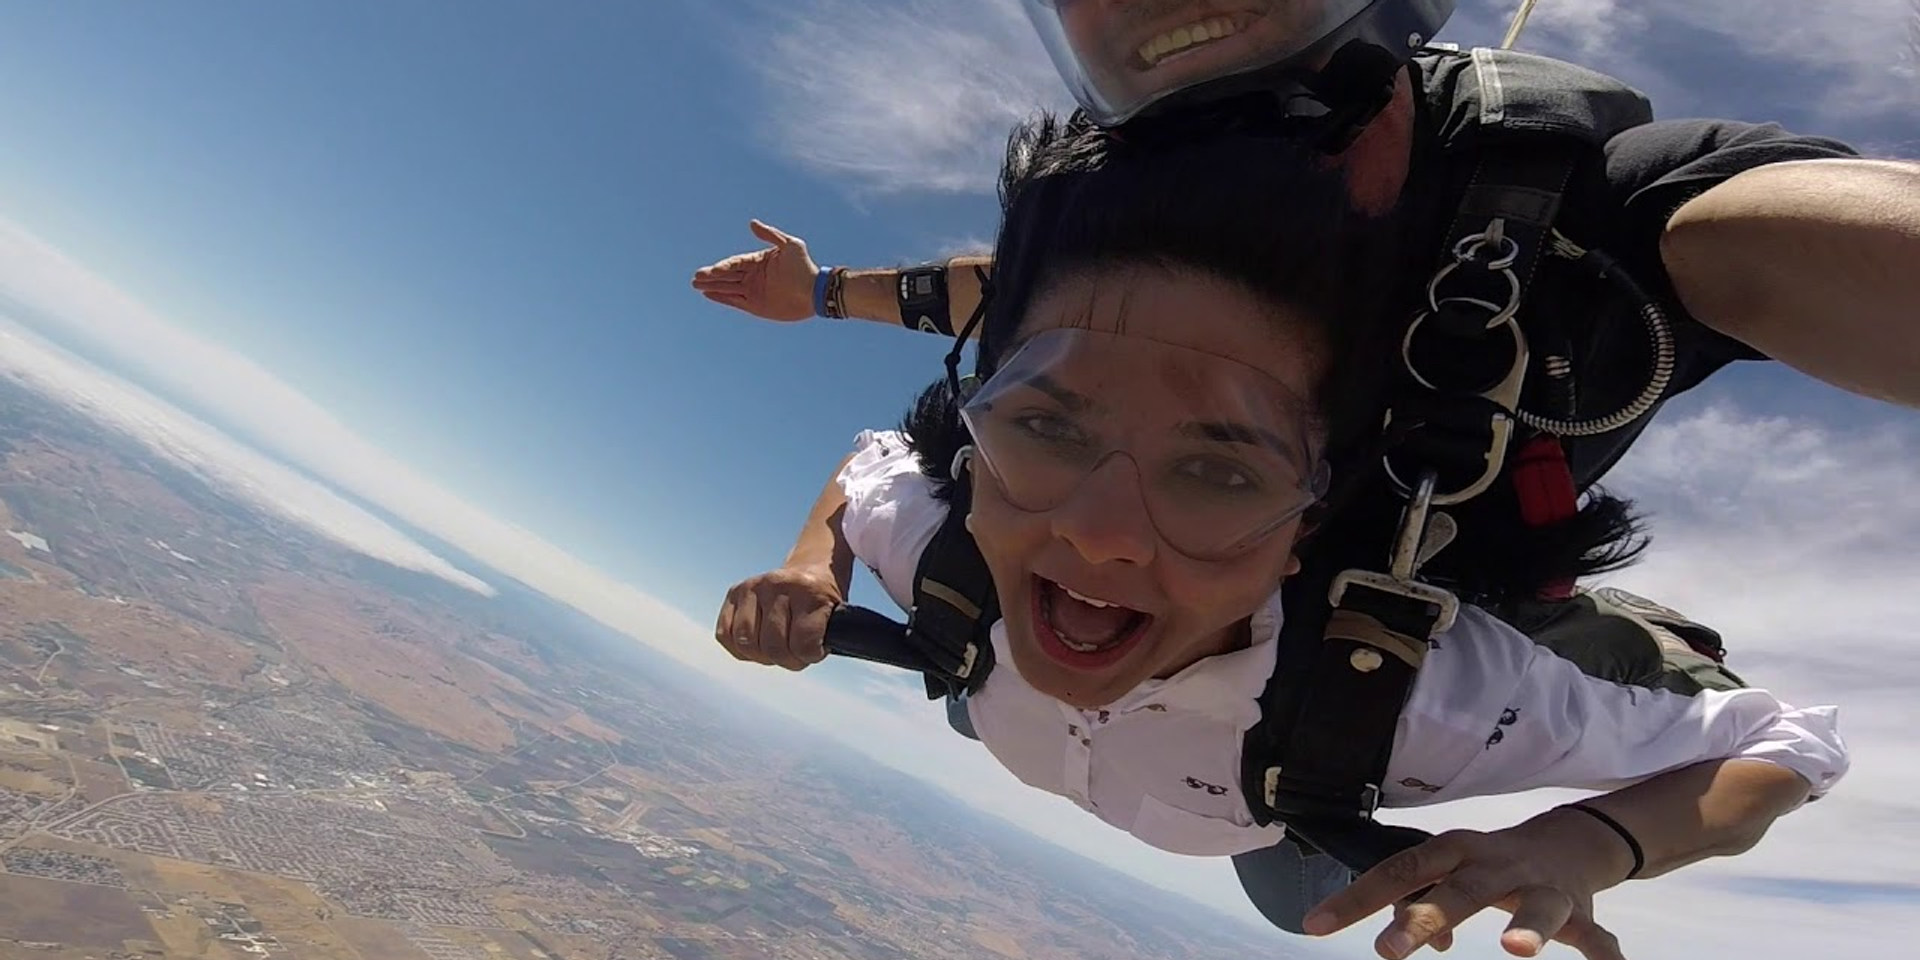 Sruthi's June 2019 First Tandem Skydive in Hollister